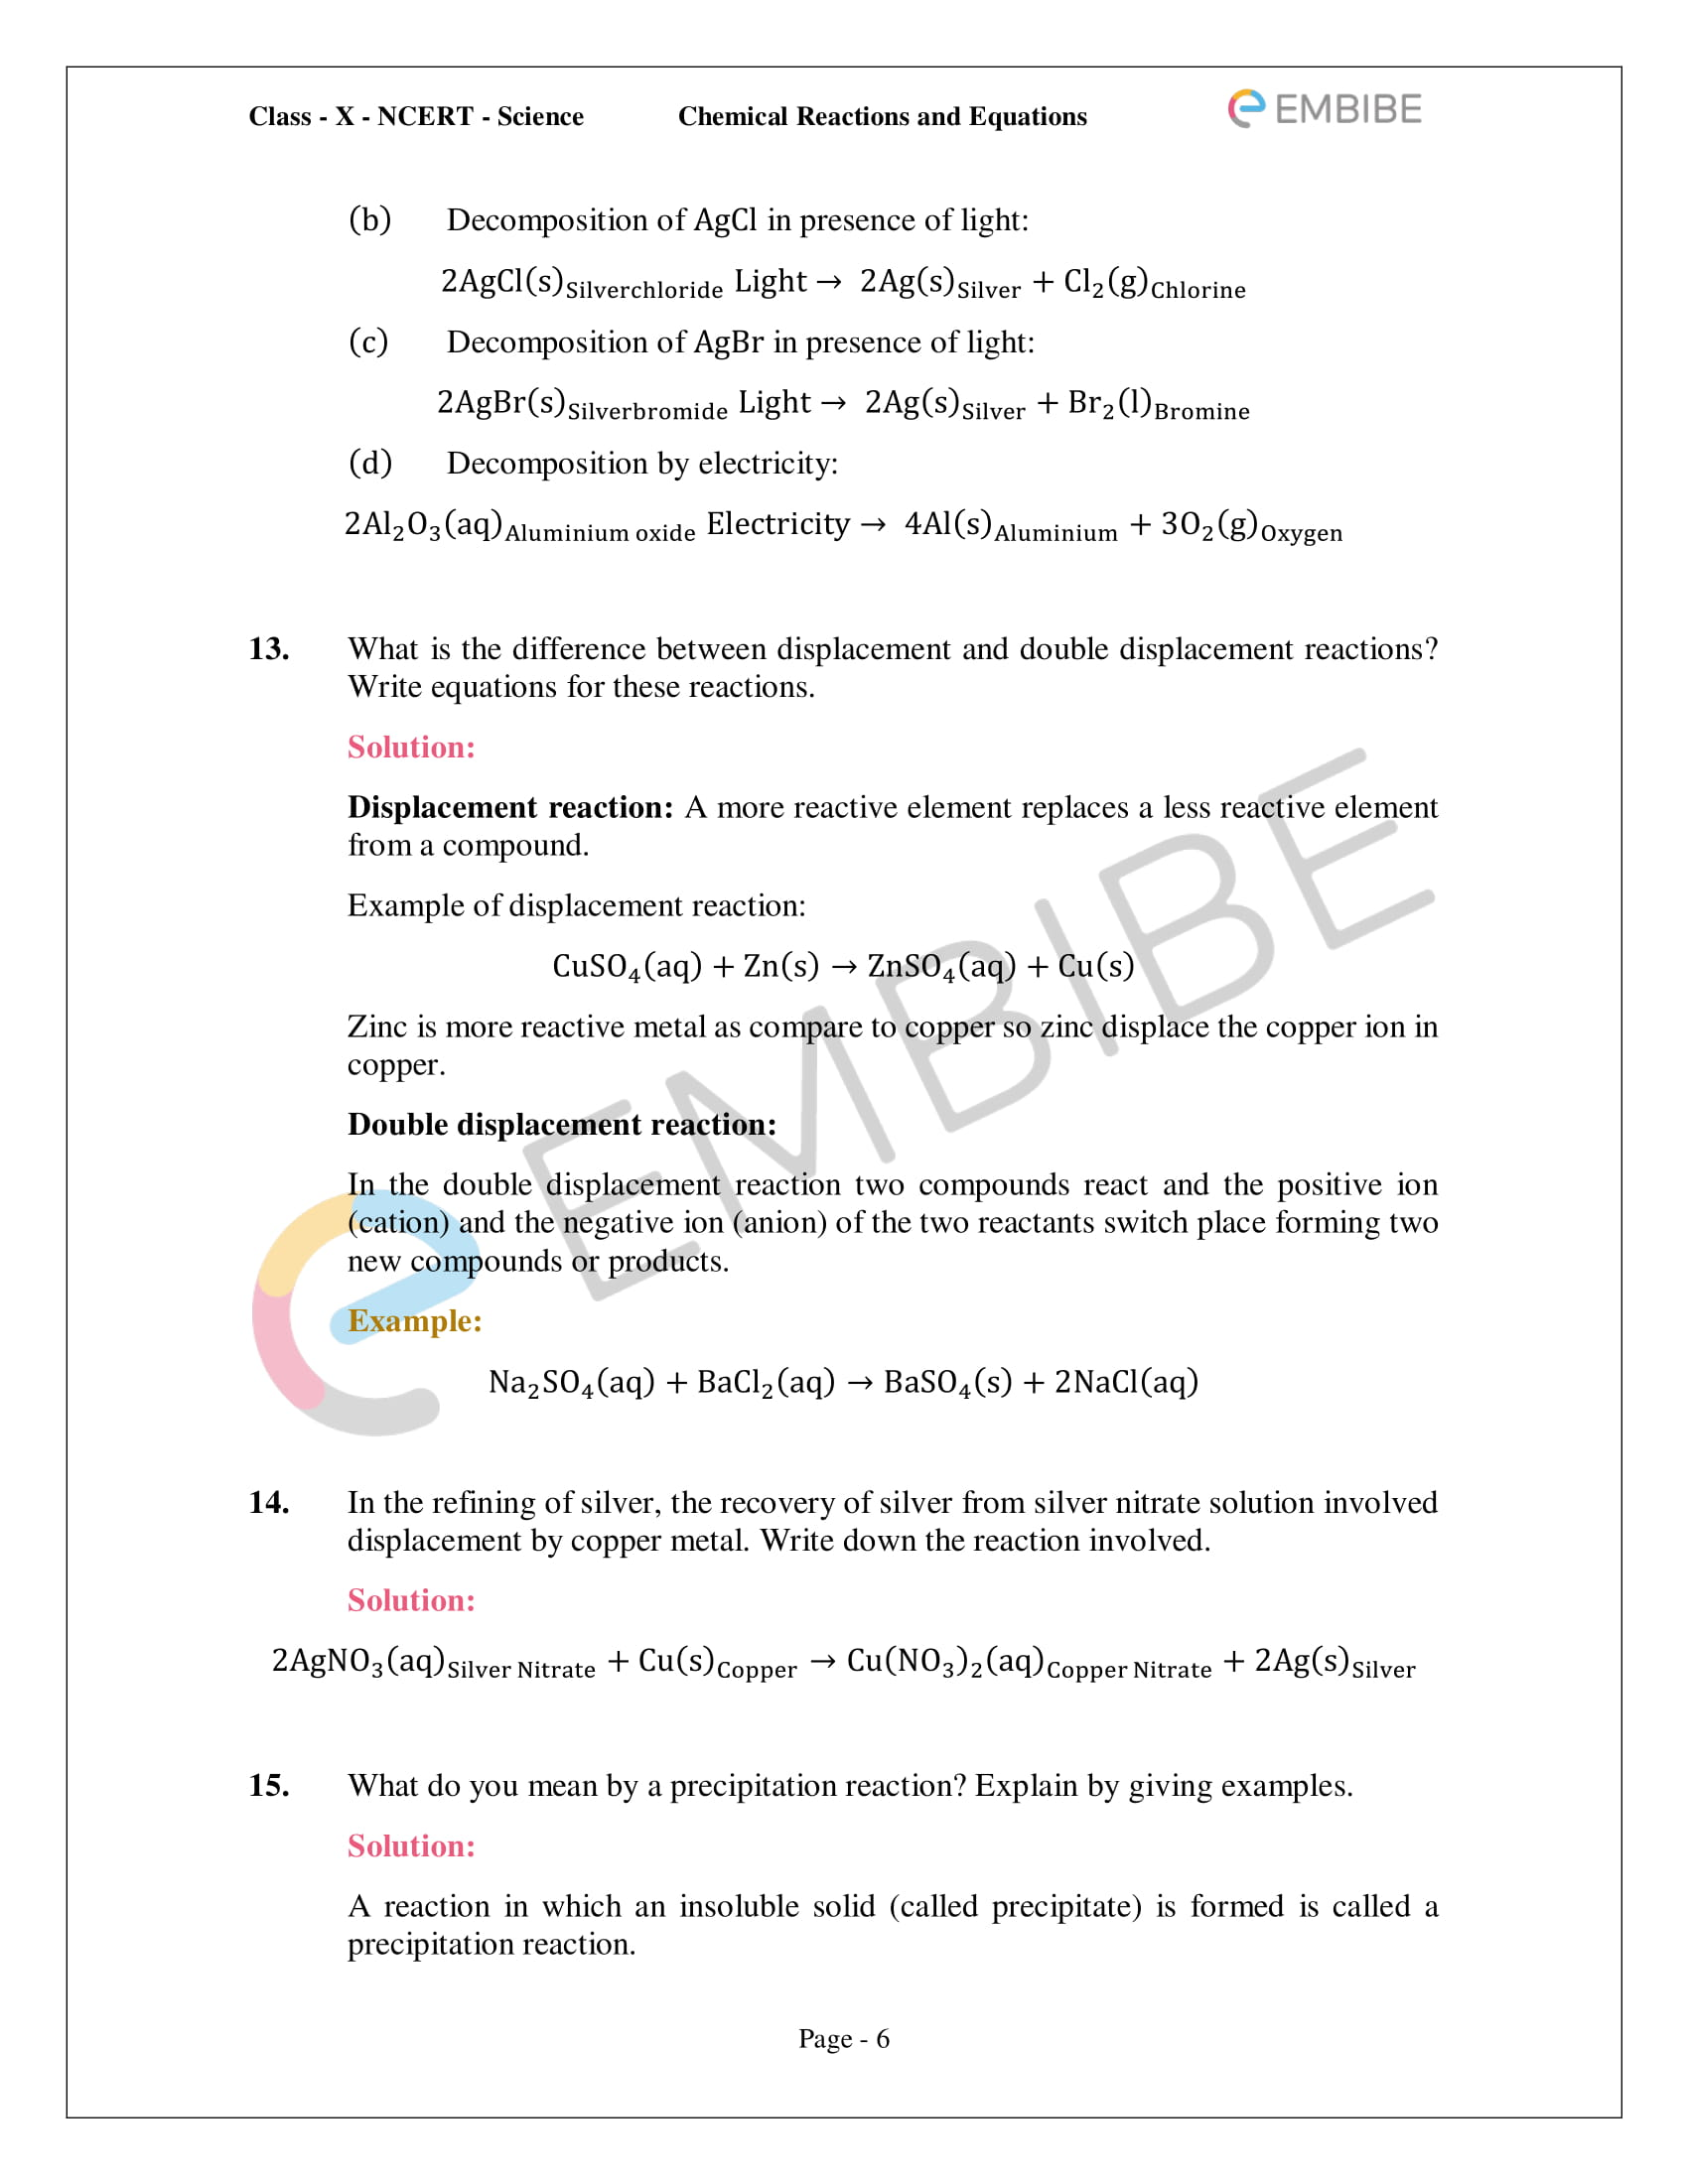 NCERT Solutions Class 10 Science Chapter 1 Chemical Reactions and Equations_questions_final _V3 (1)-06